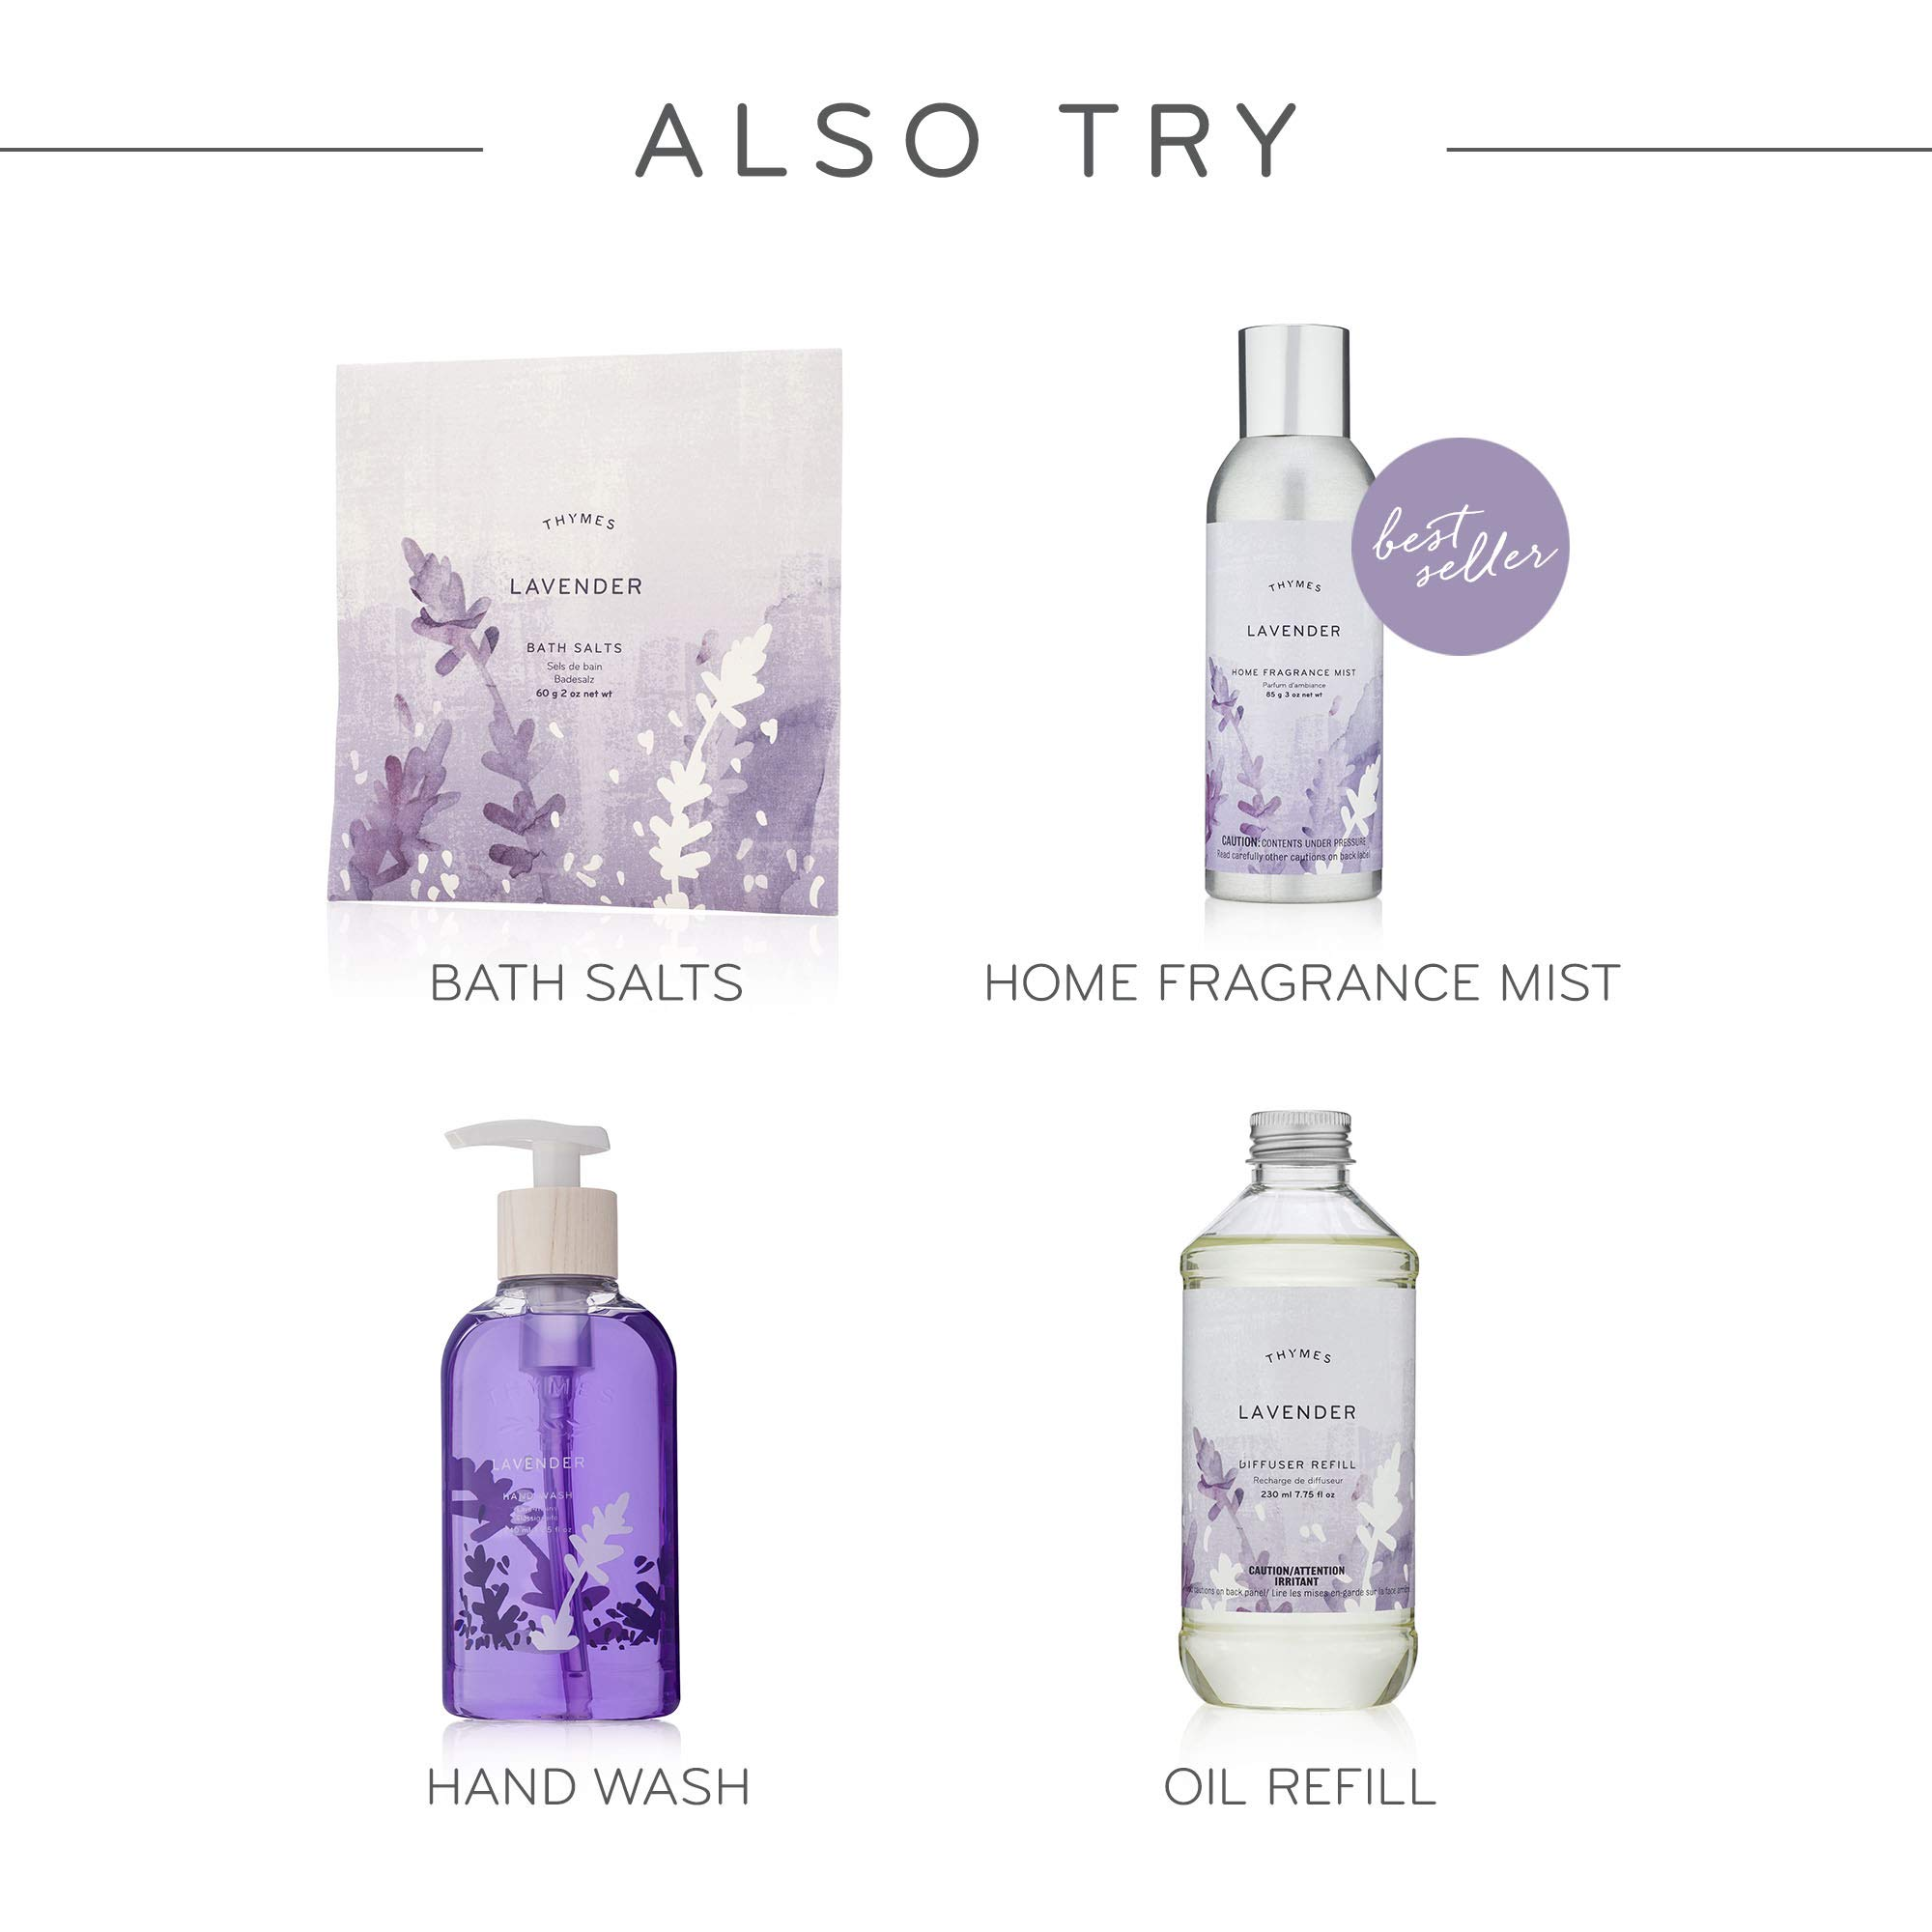 Thymes - Lavender Hand Lotion with Pump - 8.25 oz by Thymes (Image #5)